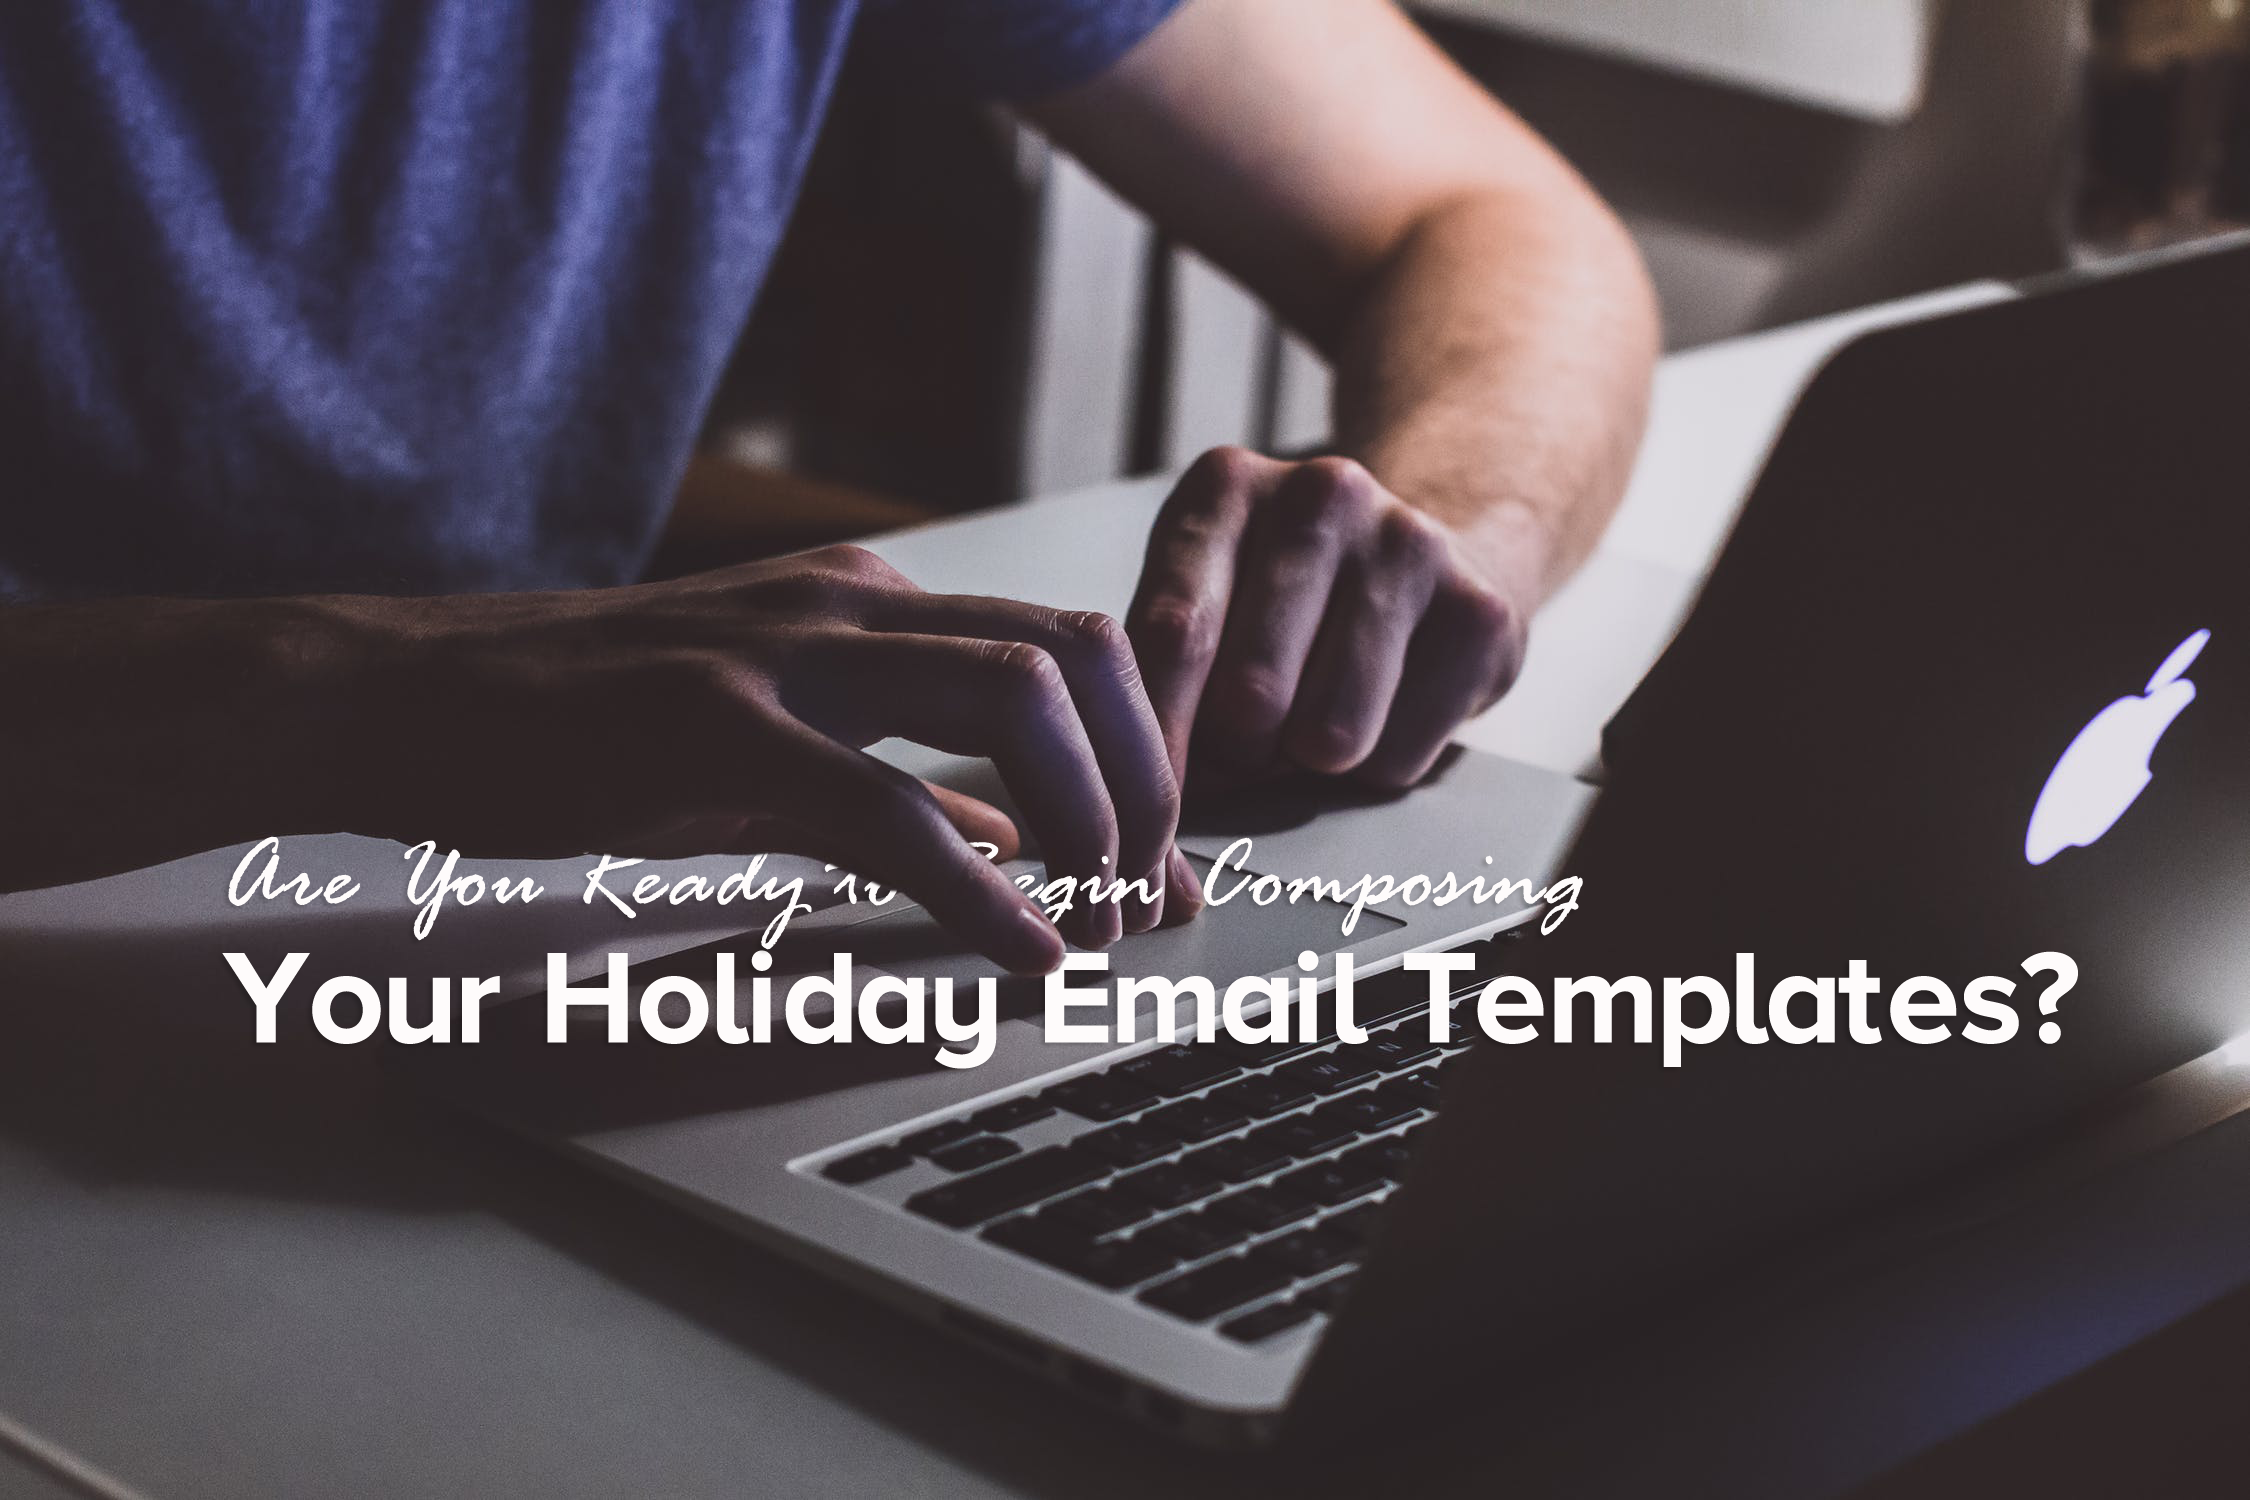 Composing Your Holiday Email Templates